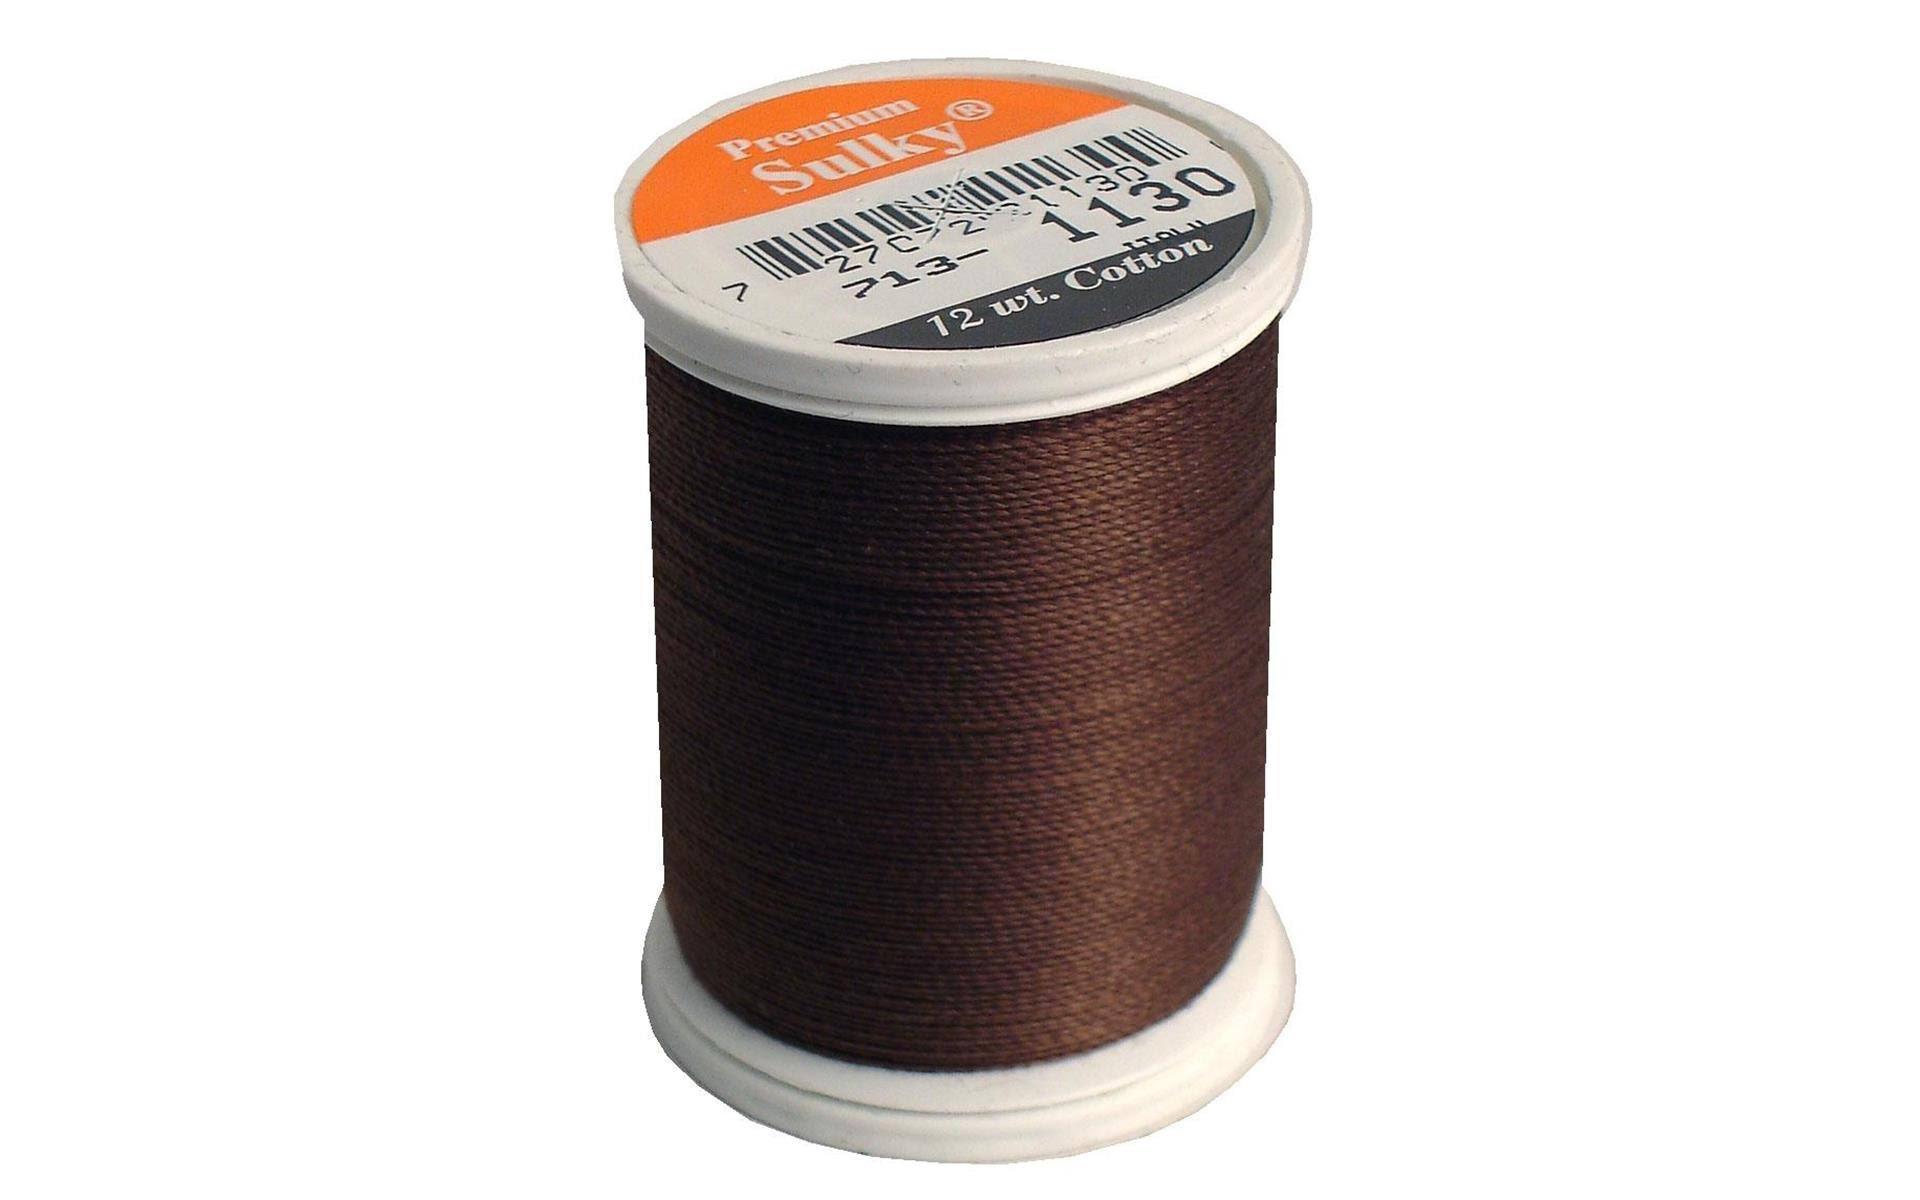 Sulky Cotton Thread - 330 Yards, Dark Brown